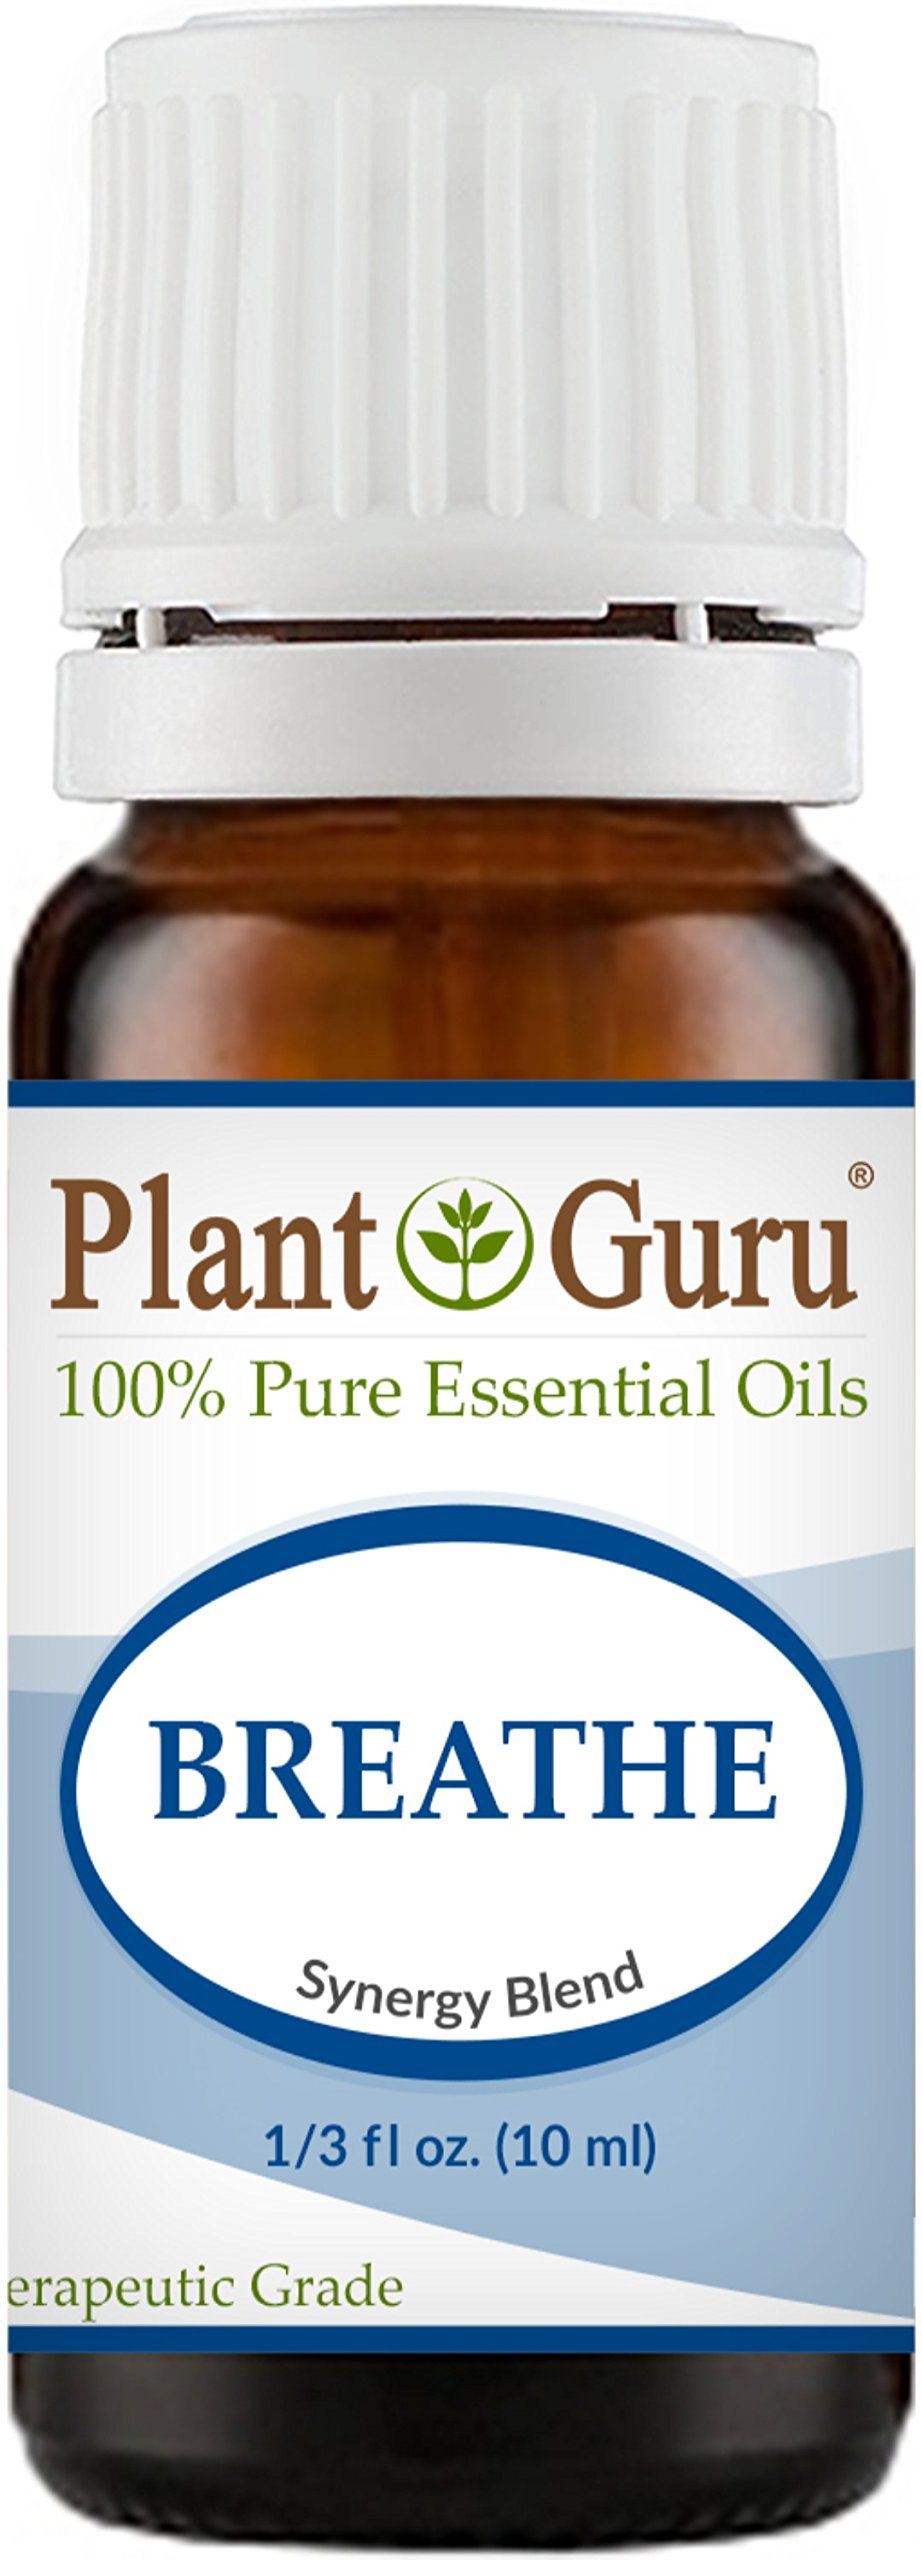 Breathe Respiratory Synergy Blend Essential Oil. 10 ml. 100% Pure Therapeutic Grade Sinus Relief Blend, Breathing Issues, Allergy Relief, Congestion Relief, Cough, Cold and Flu, Aromatherapy Diffuser.